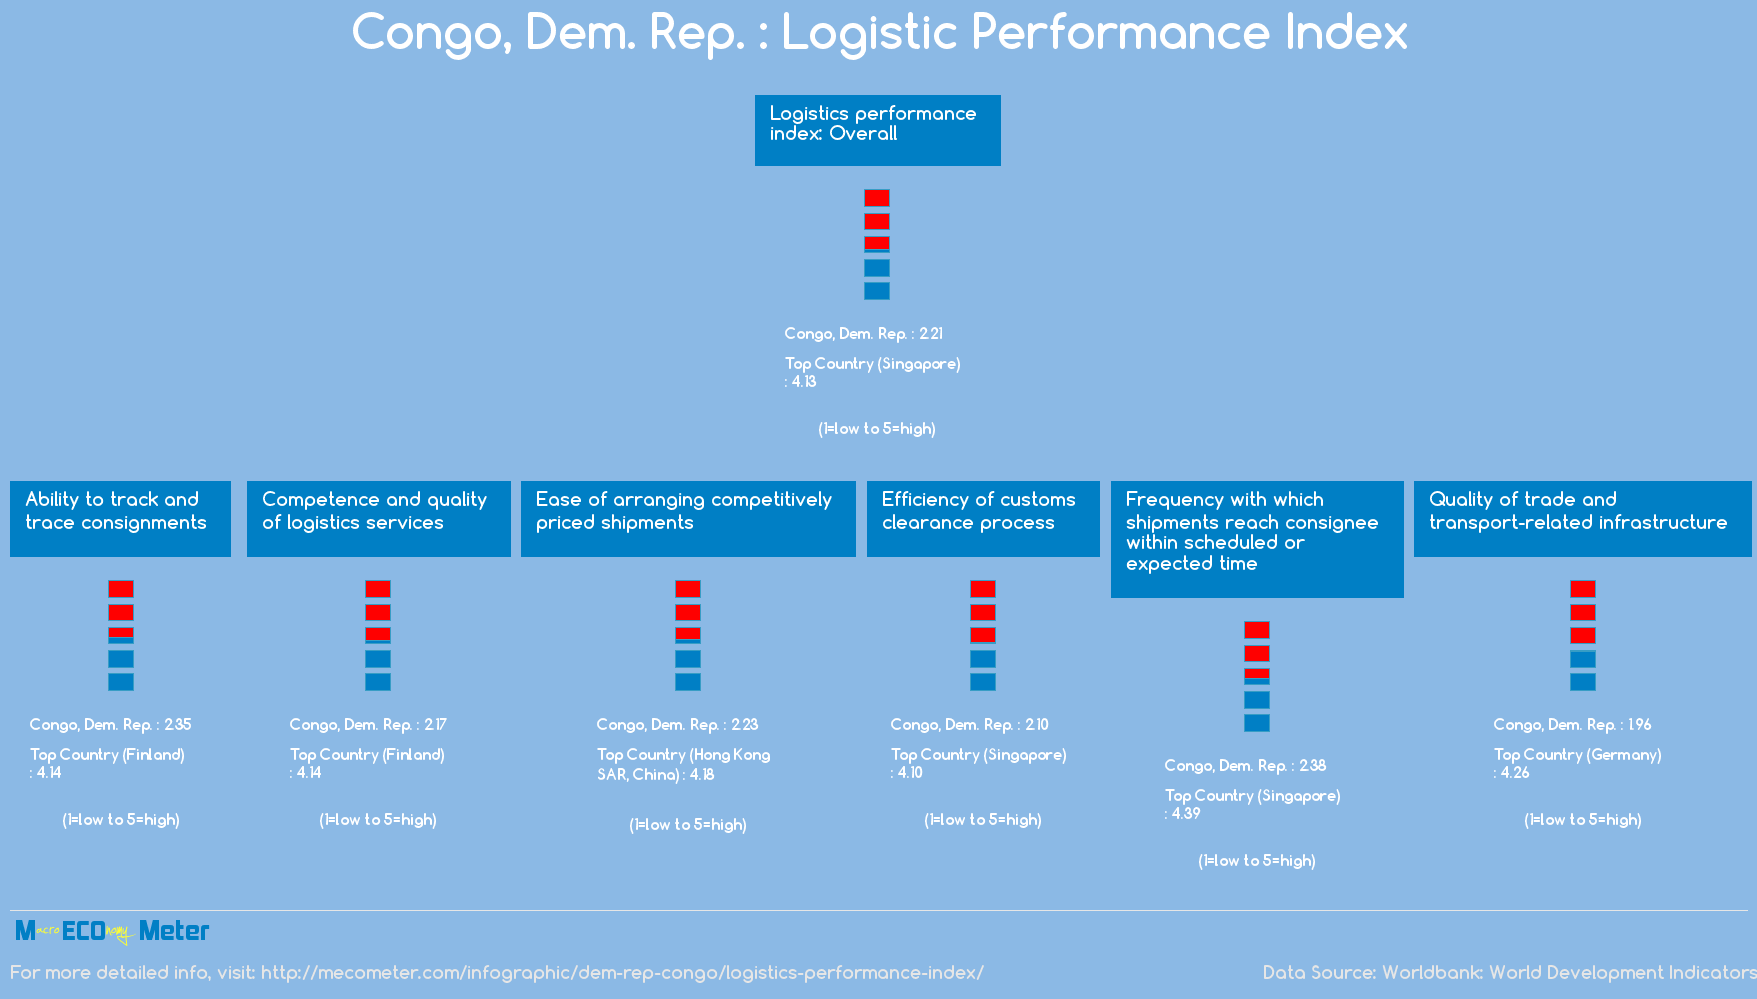 Congo, Dem. Rep. : Logistic Performance Index